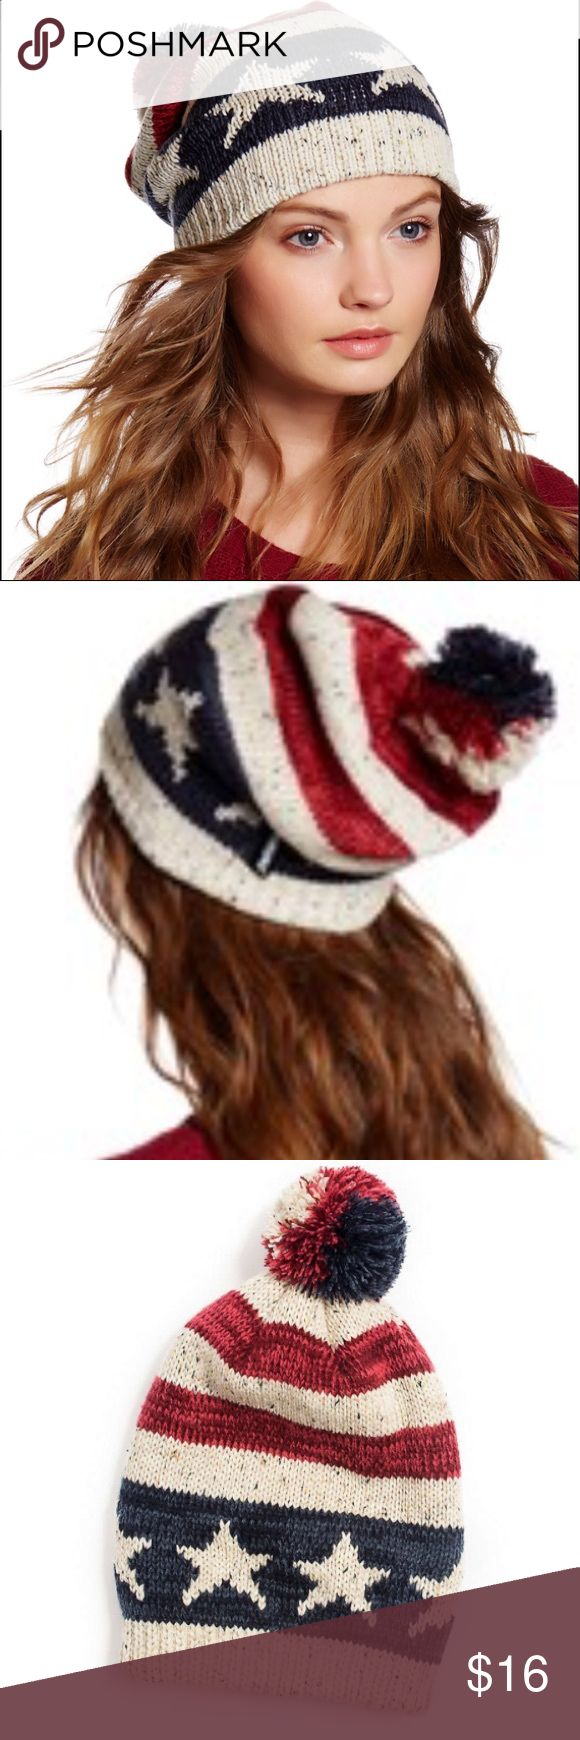 MUK LUKS Americana Pompom Beanie Lodge-worthy details define the outdoor-bound style of this beanie, knit from an ultrasoft textile. With this cute American flag beanie, you can show your patriotism and stay cozy while doing it. One size fits most.  100% acrylic Machine wash; dry flat Muk Luks Accessories Hats